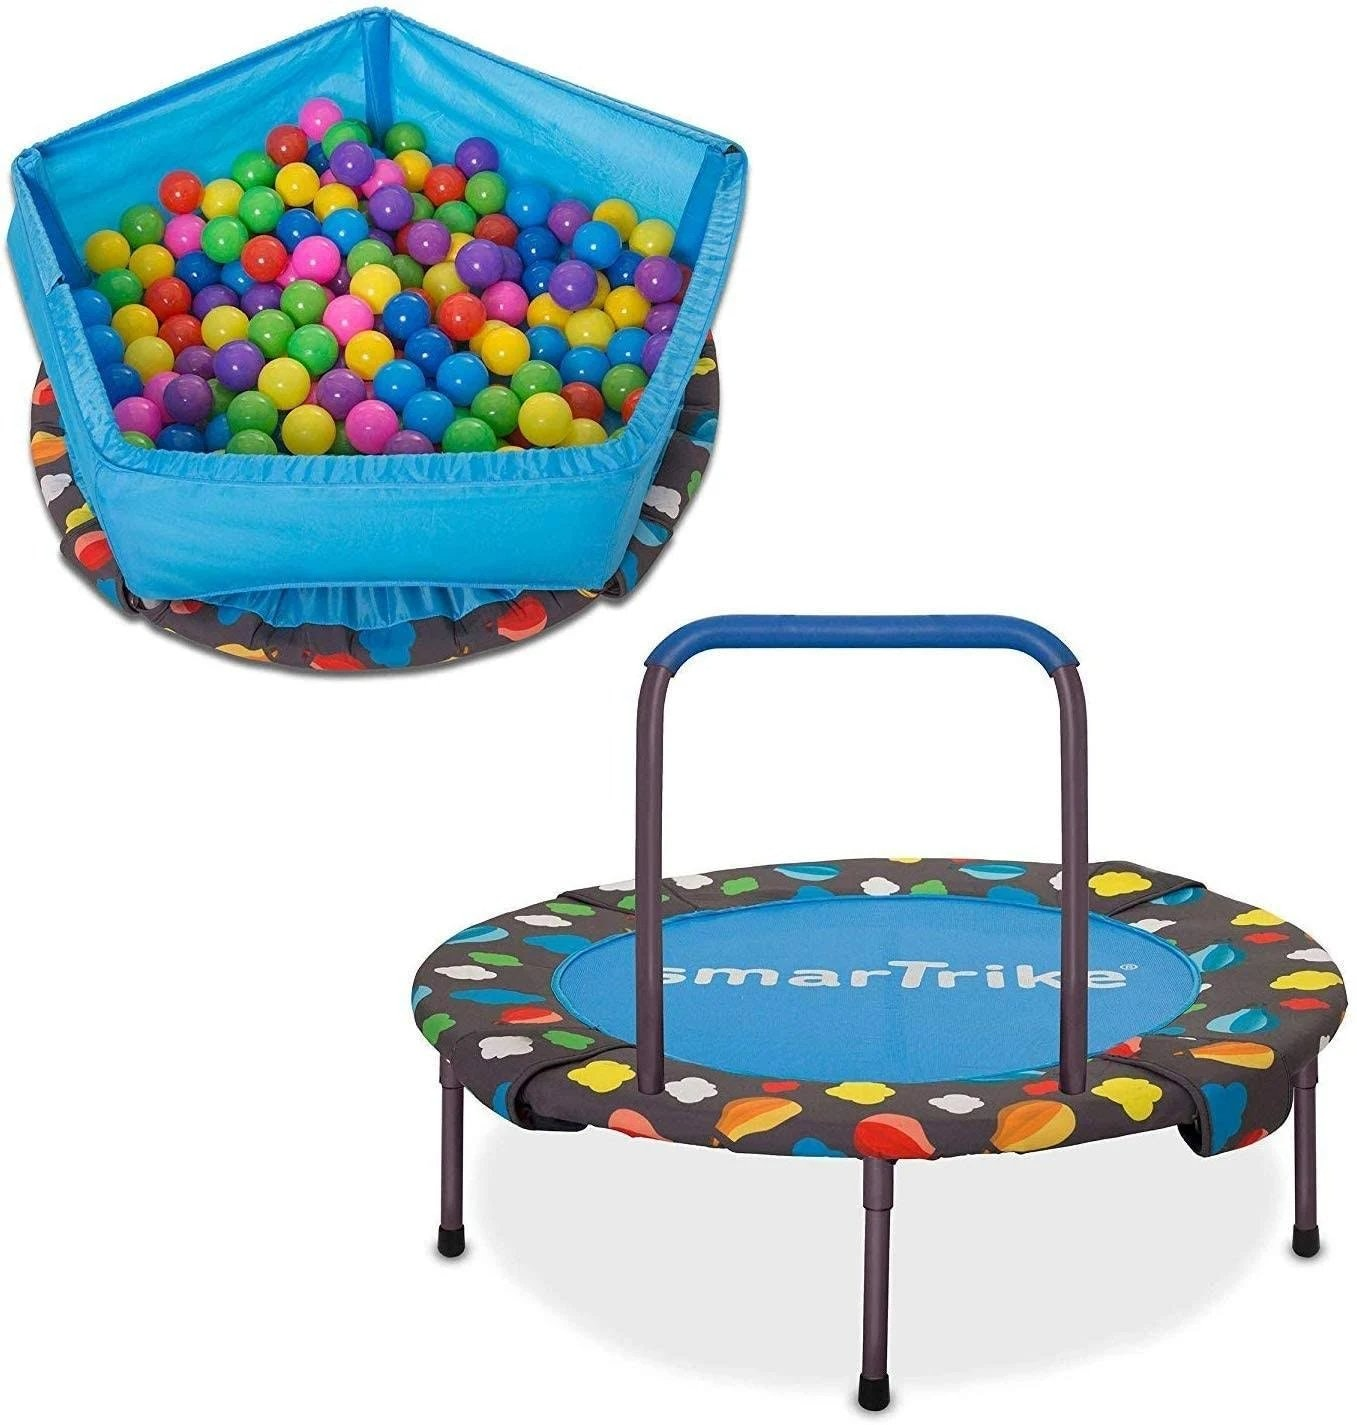 Smartrike 3-In-1 Activity Center